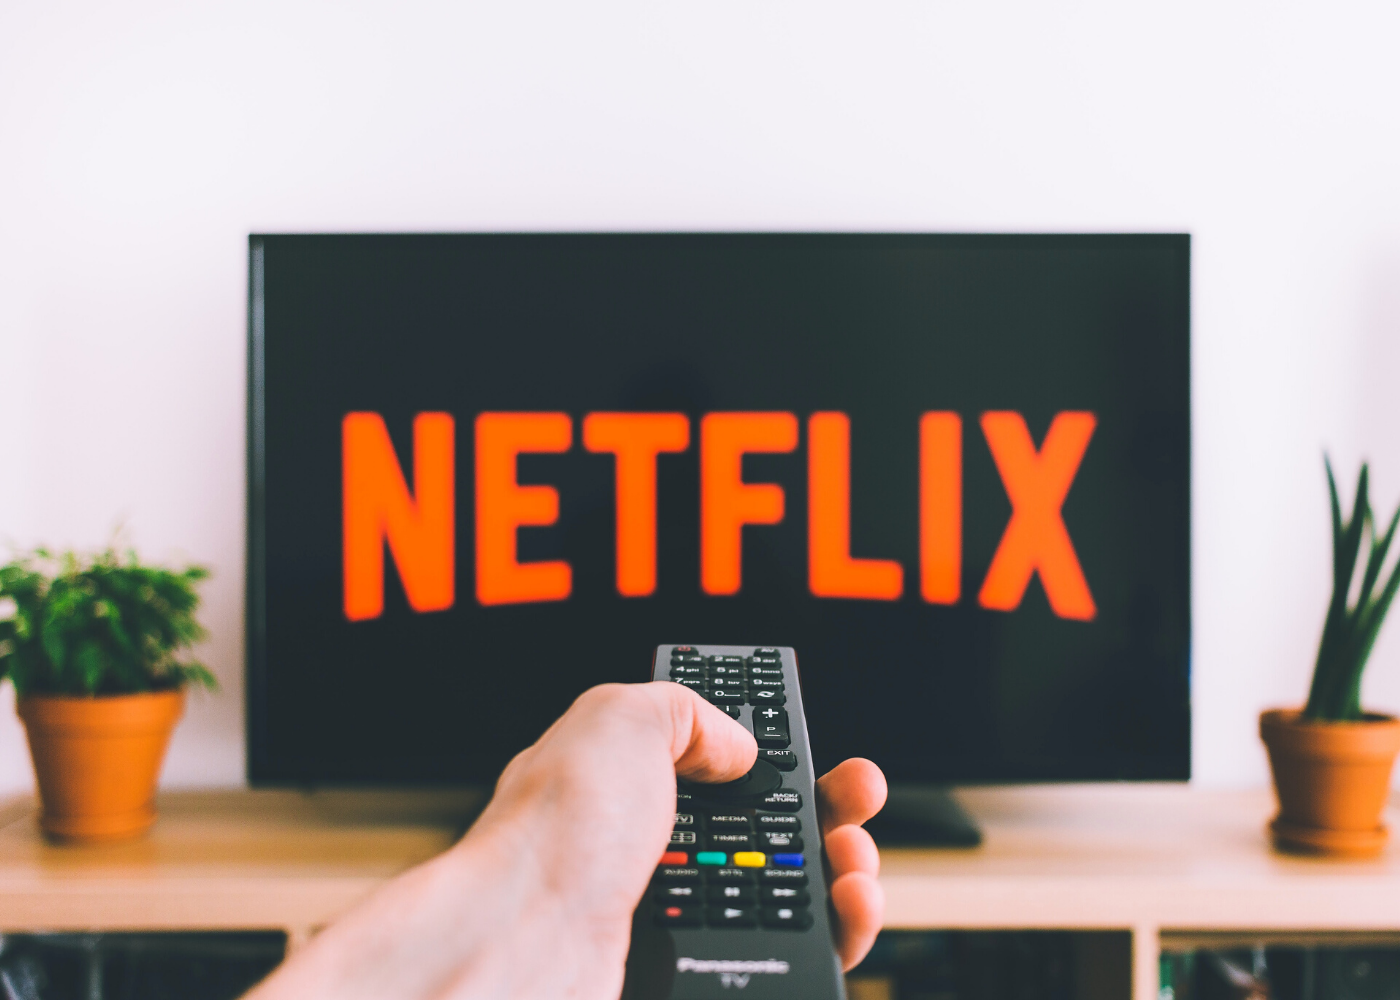 Online gatherings during Covid-19: Stay connected with watch parties and more while social distancing | Netflix watch parties